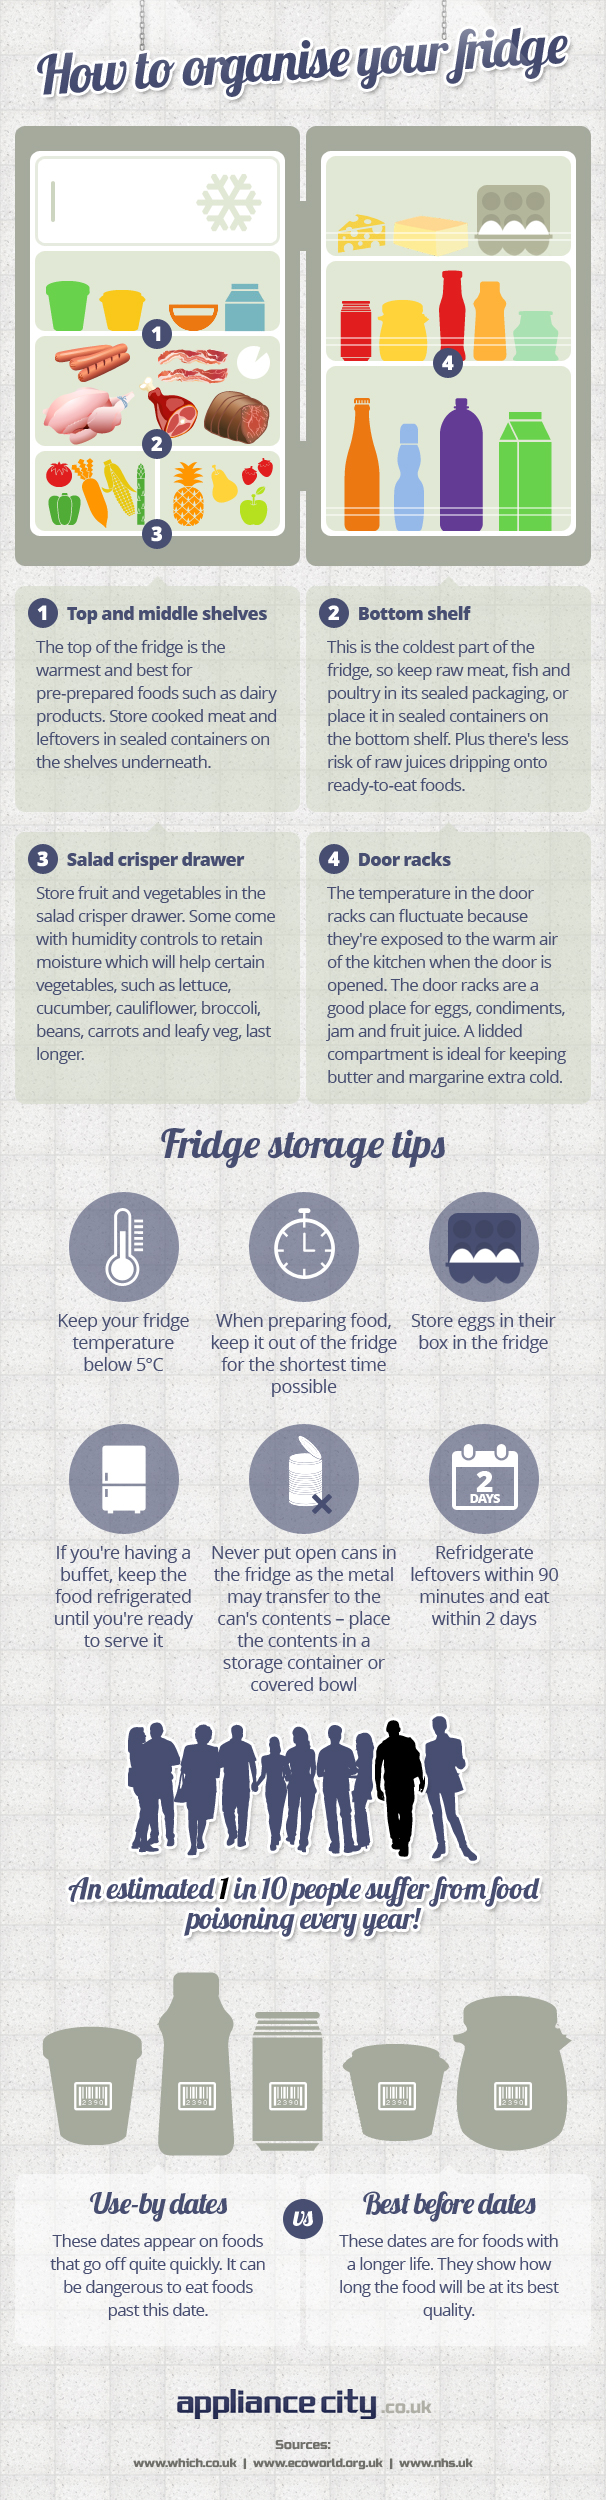 How to Organise Your Fridge - Appliance City